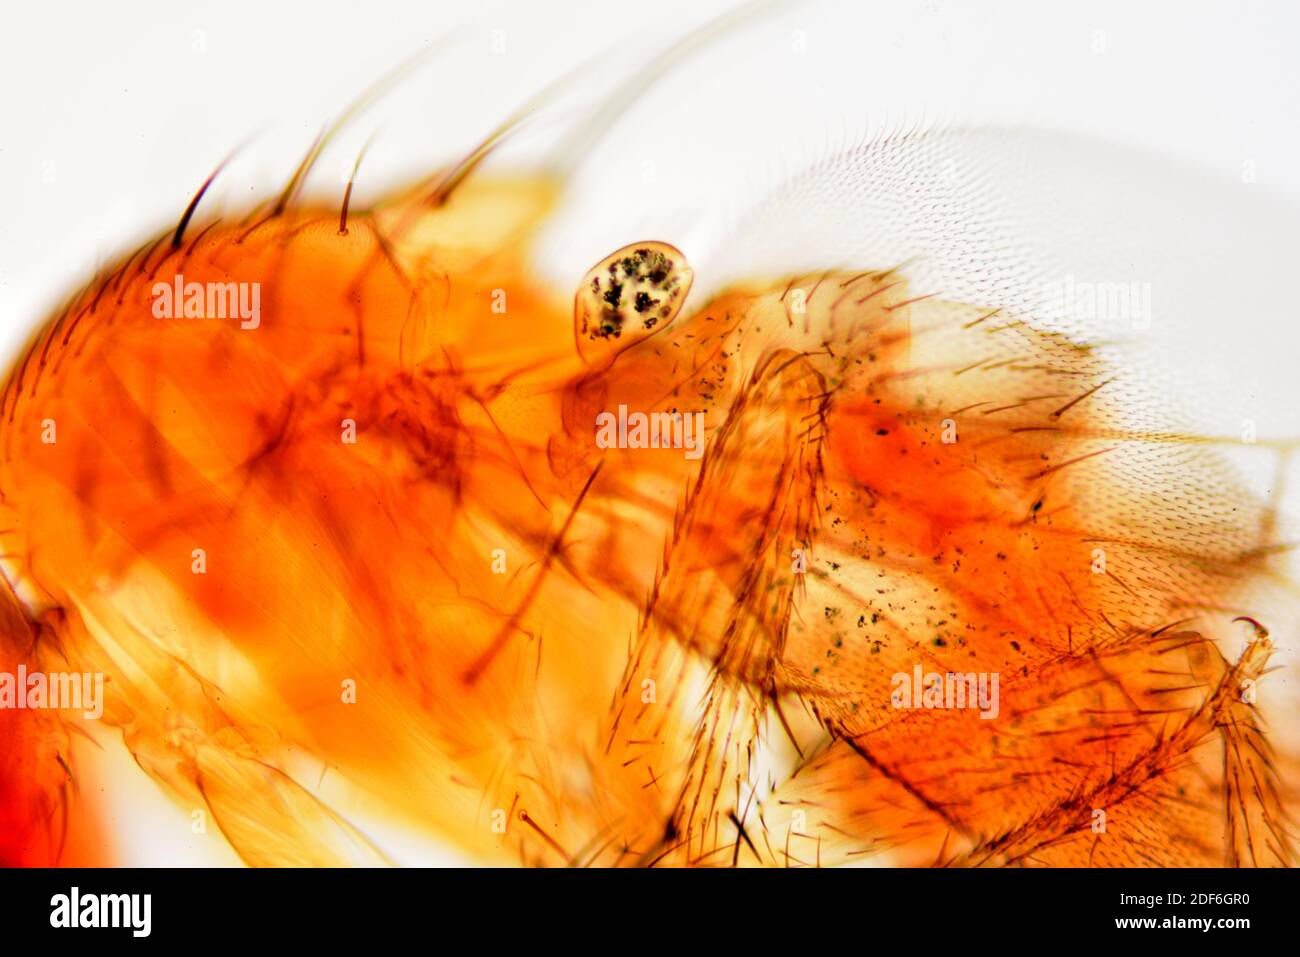 Vinegar fly or fruit fly (Drosophila melanogaster) halter detail. Optical microscope X100. Stock Photo